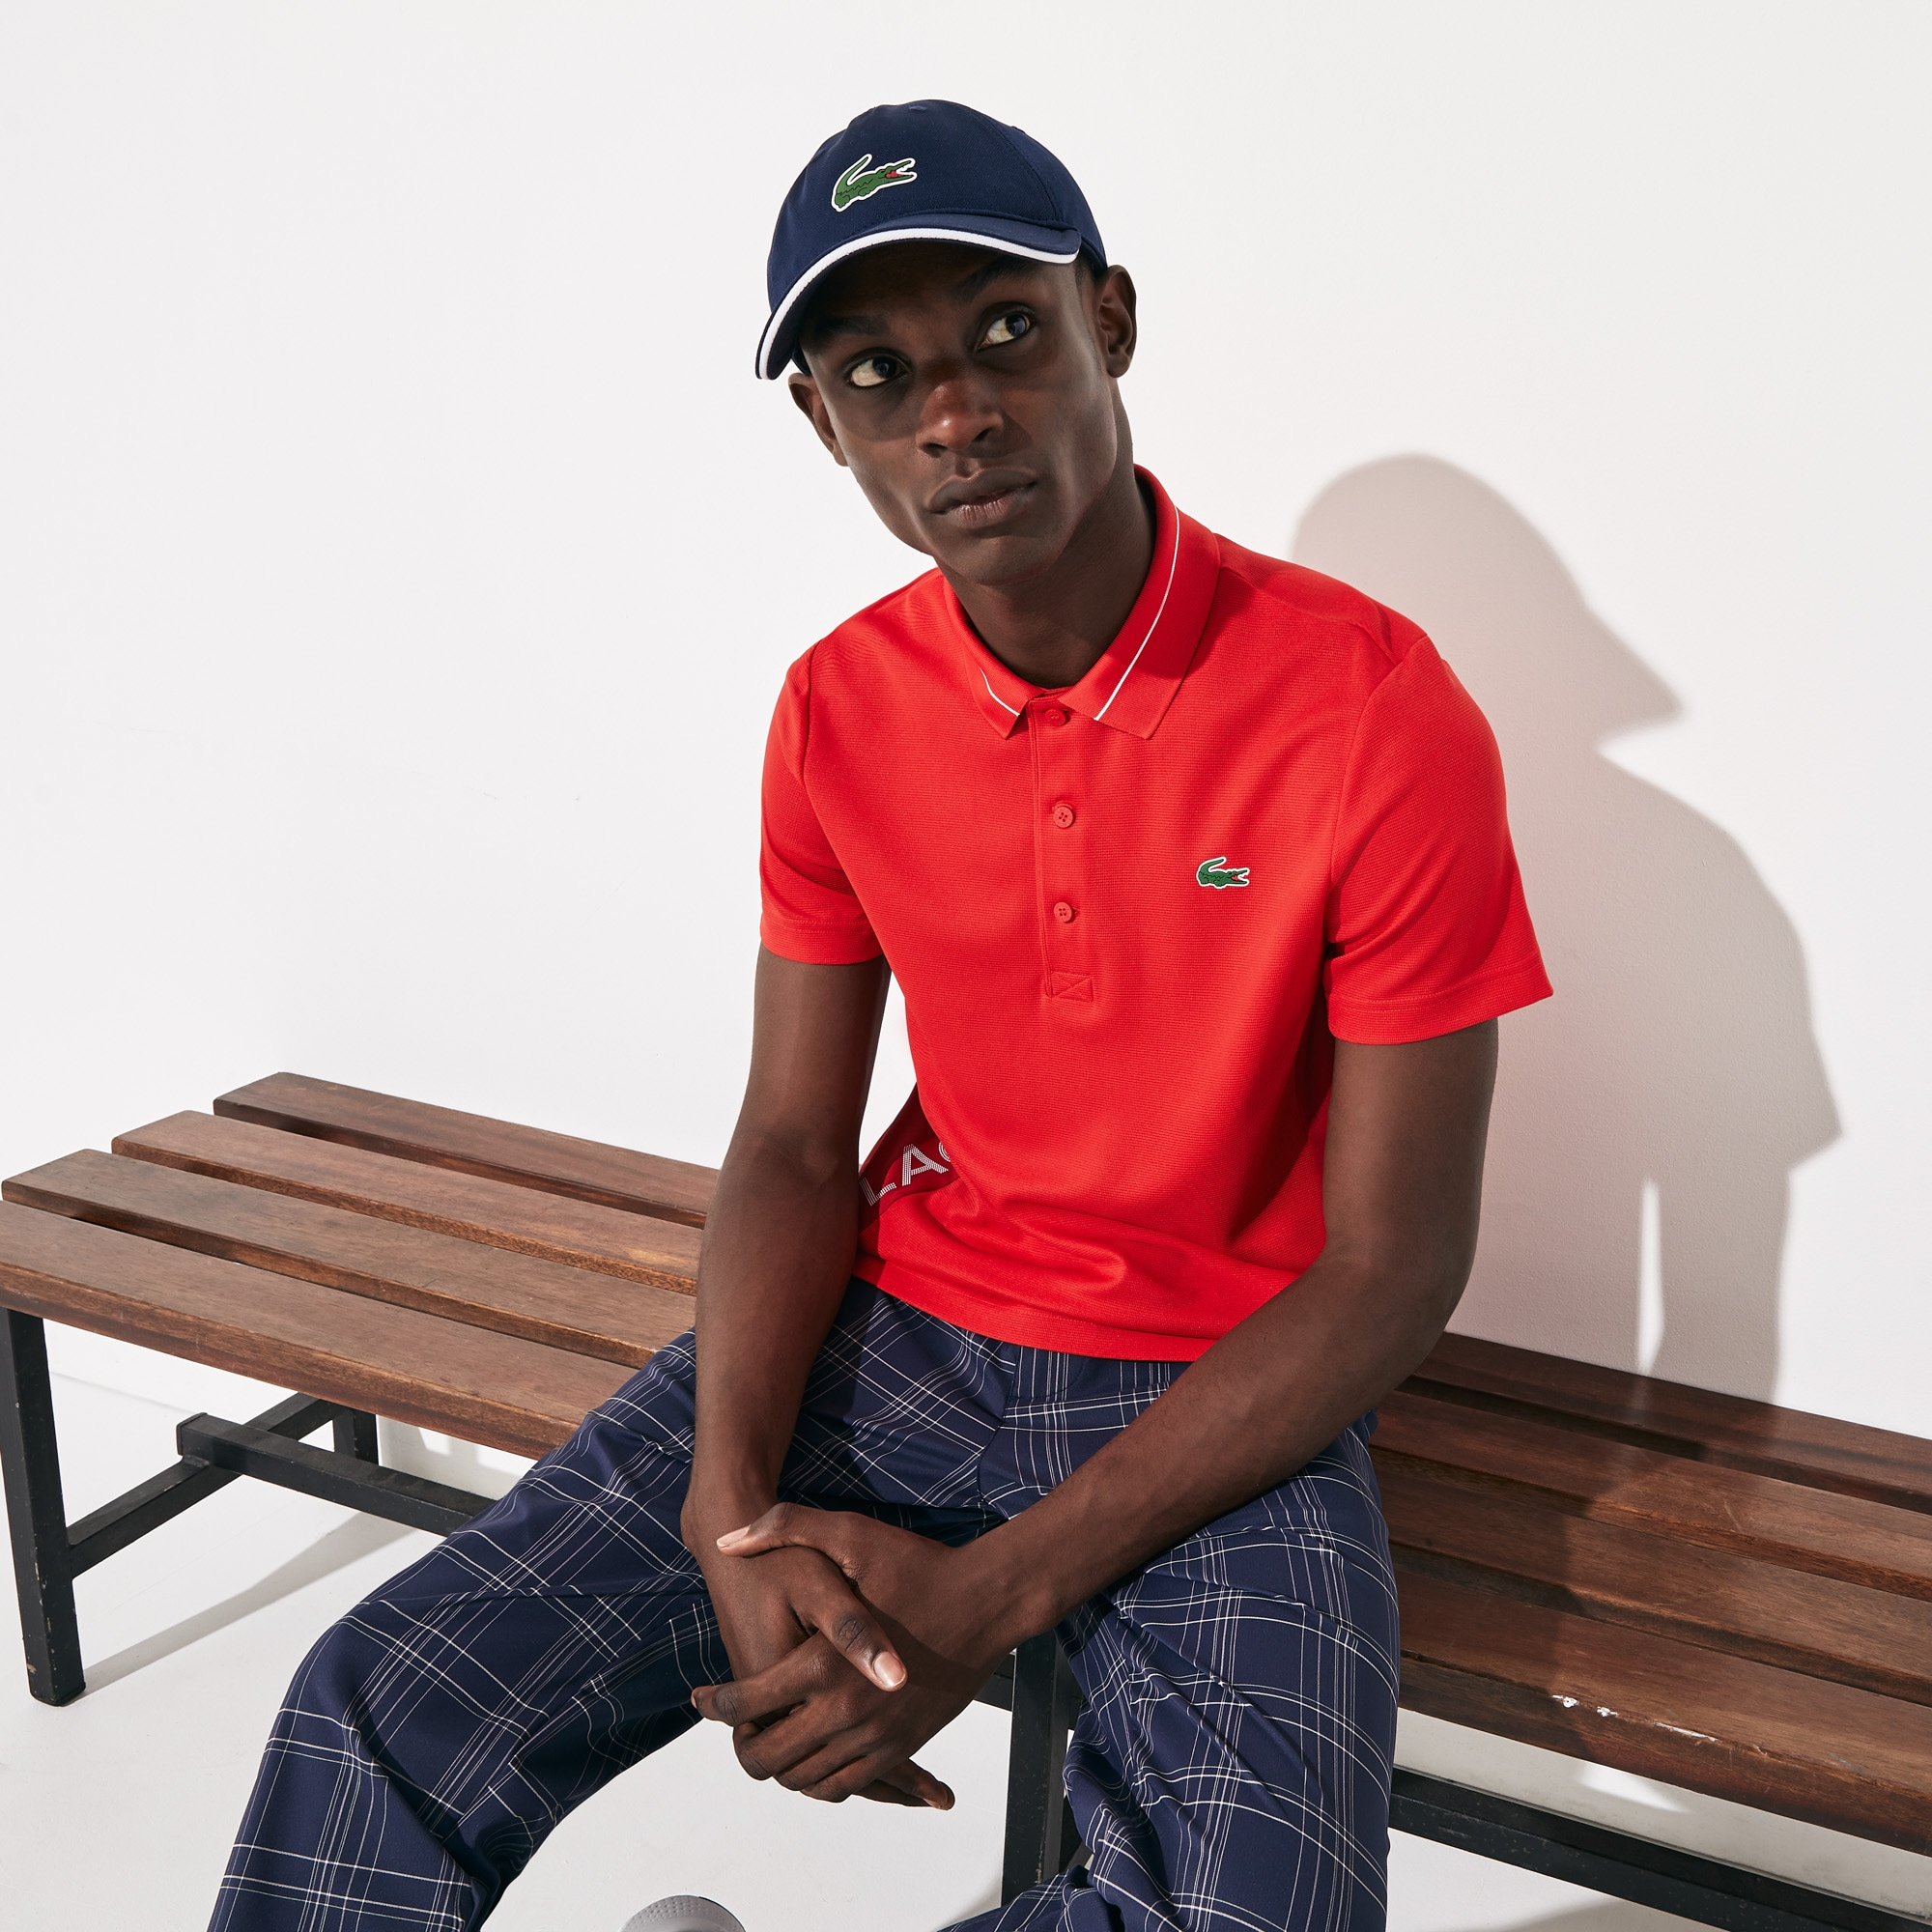 Men's Lacoste SPORT Lettering And Panels Knit Golf Polo Shirt